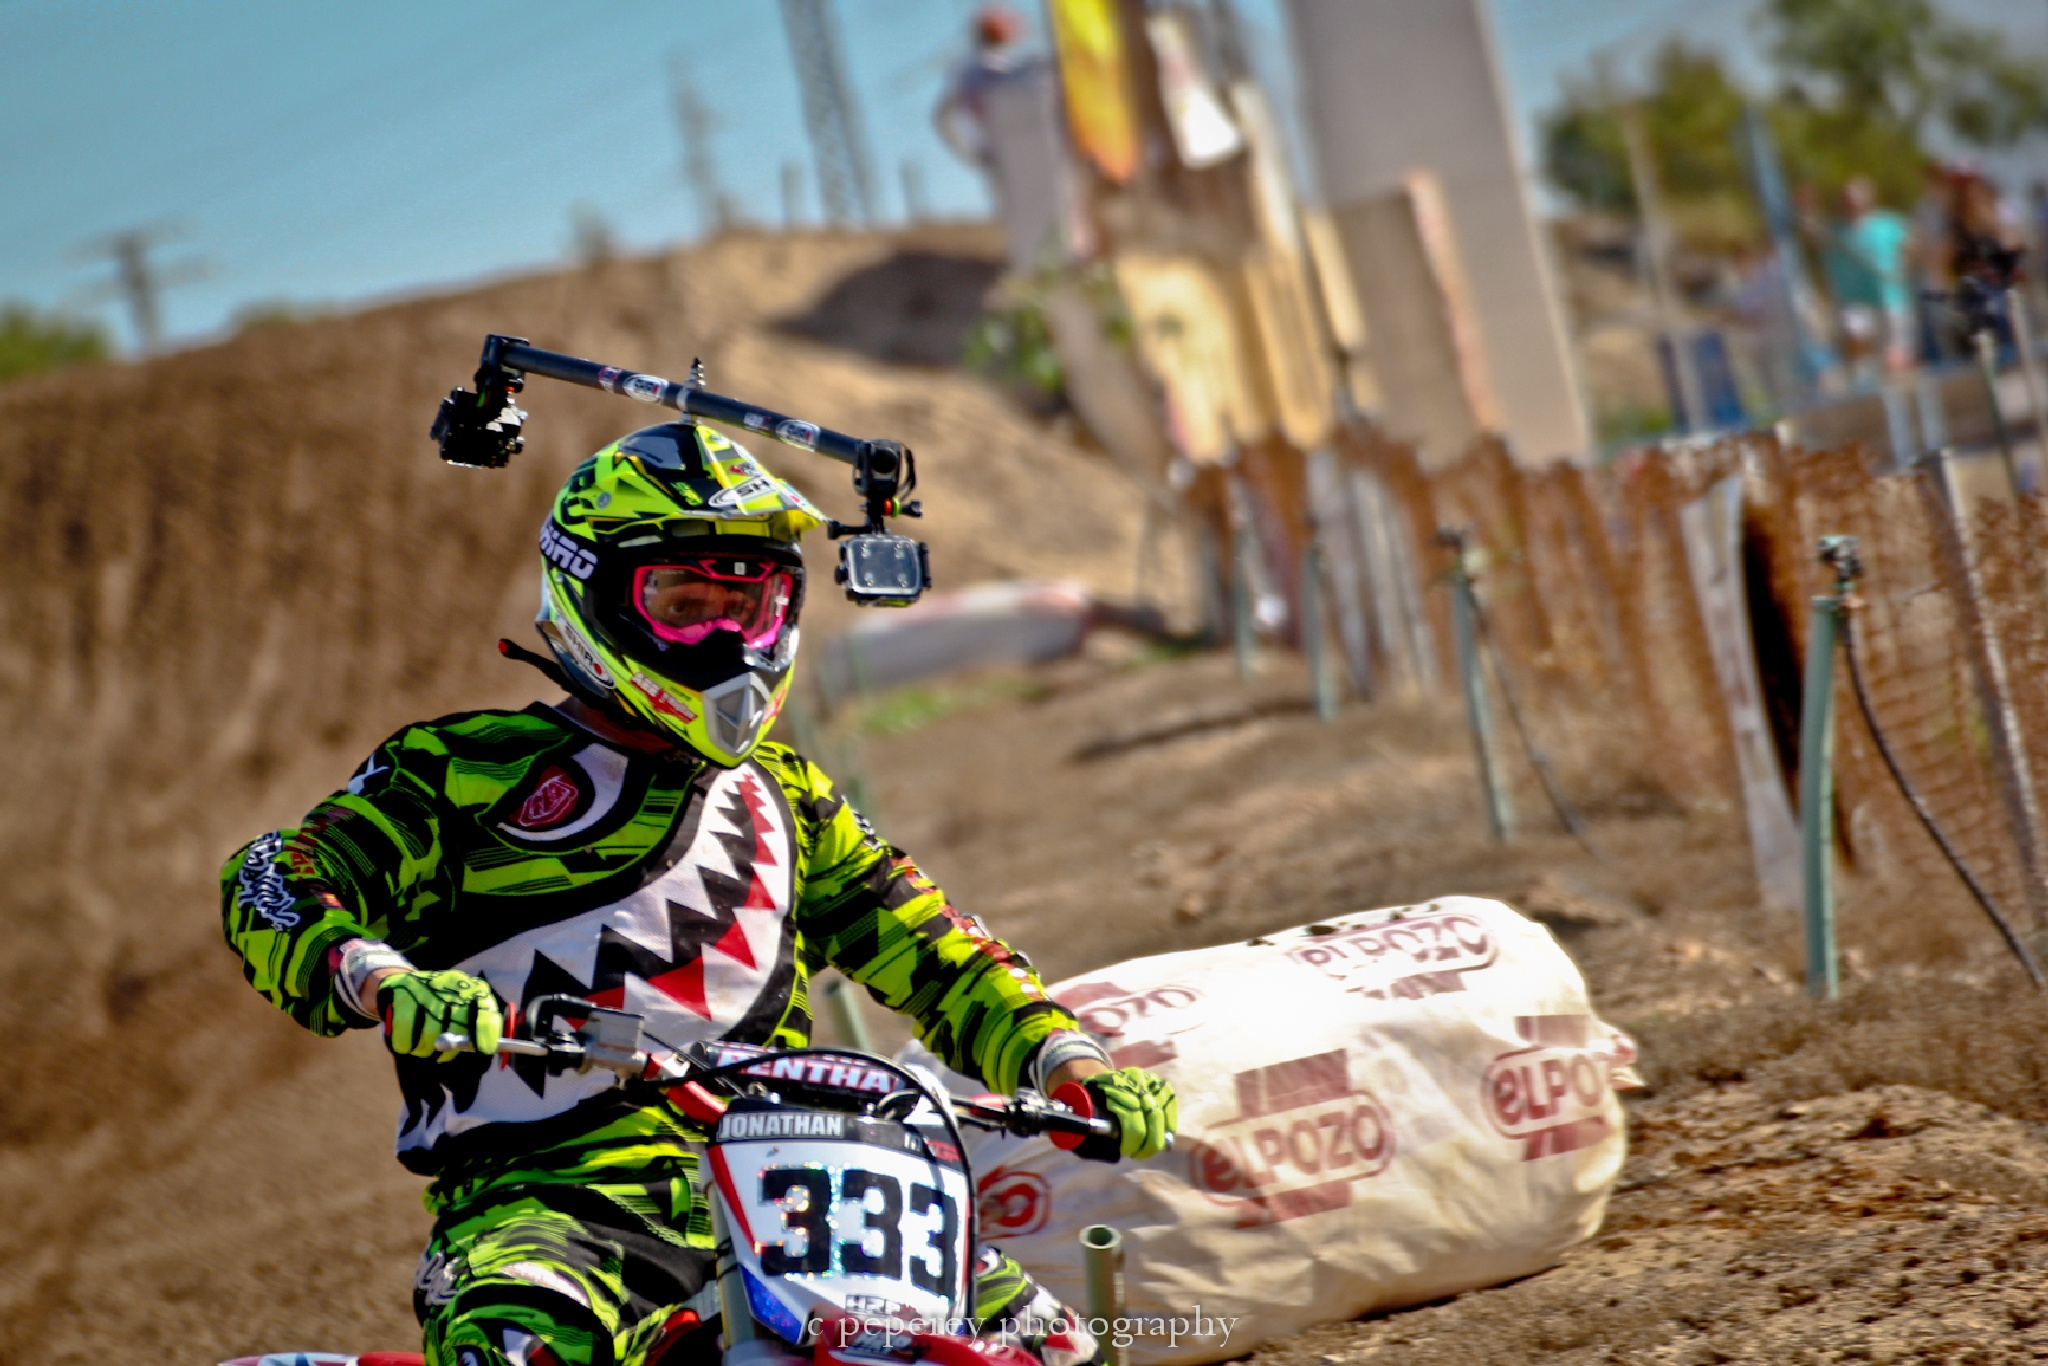 Onboard selfie mx by pepereyphotography